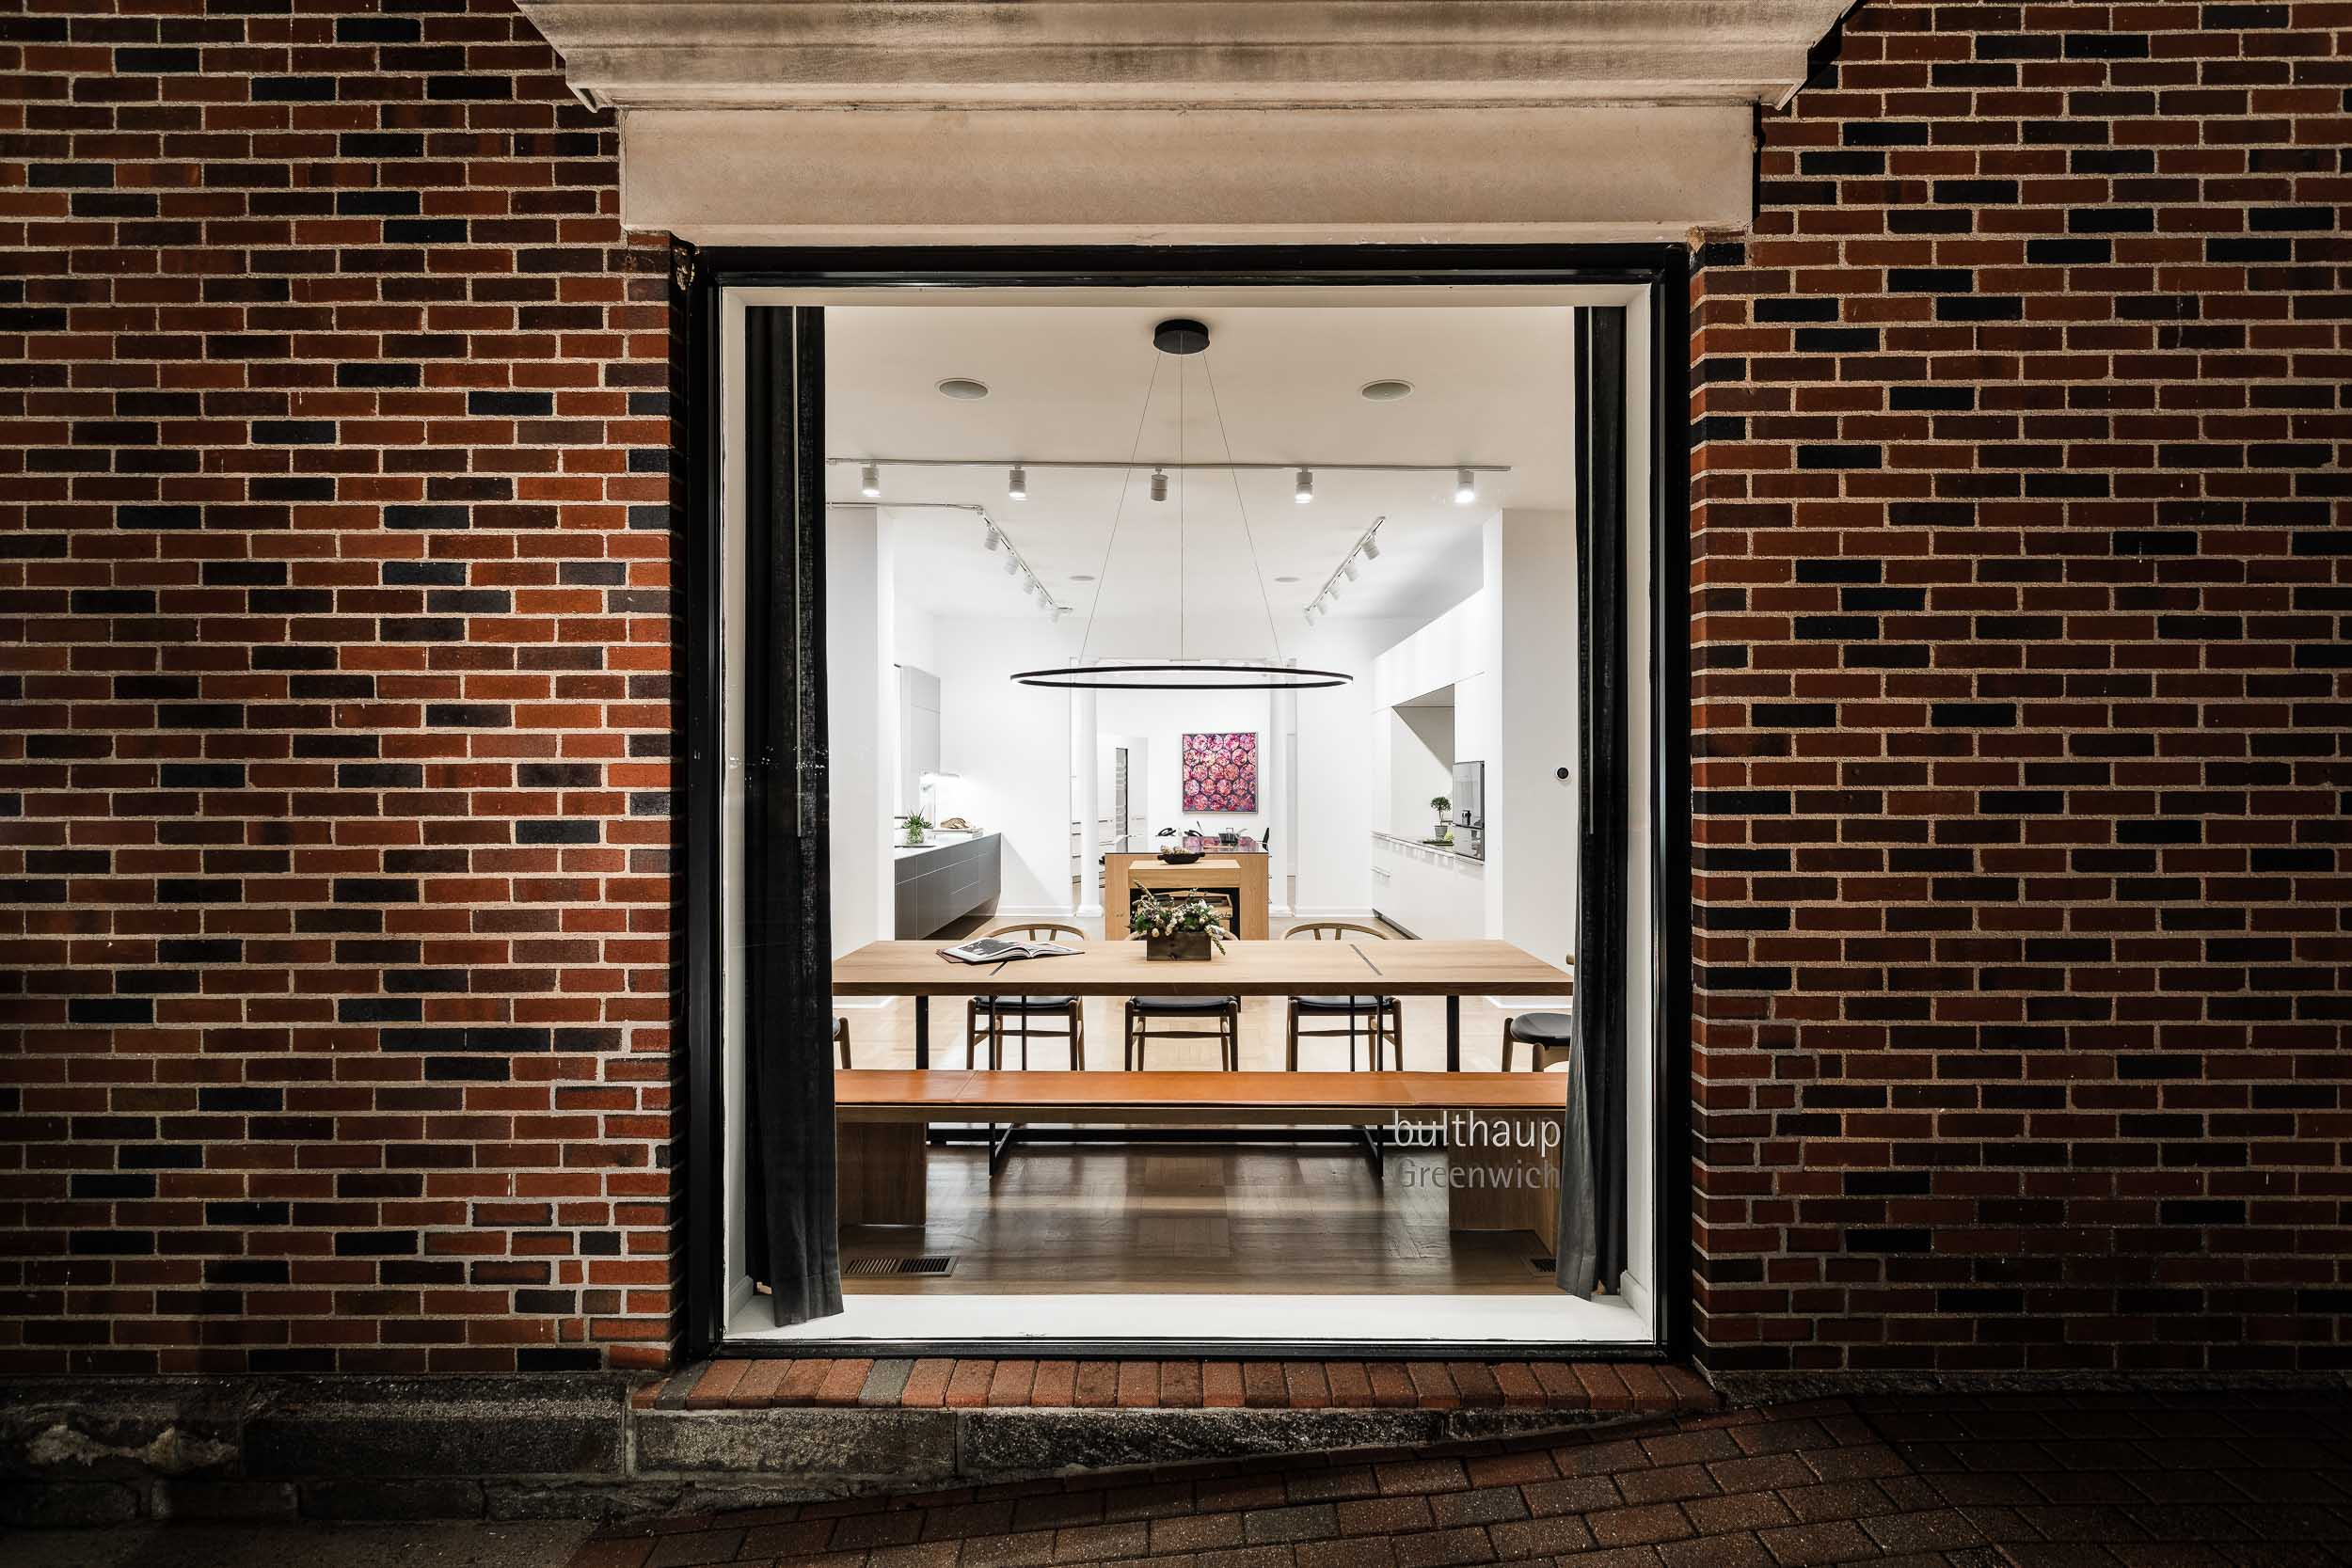 Architectural exteriors photography of a kitchen design showroom in Greenwich, Connecticut.